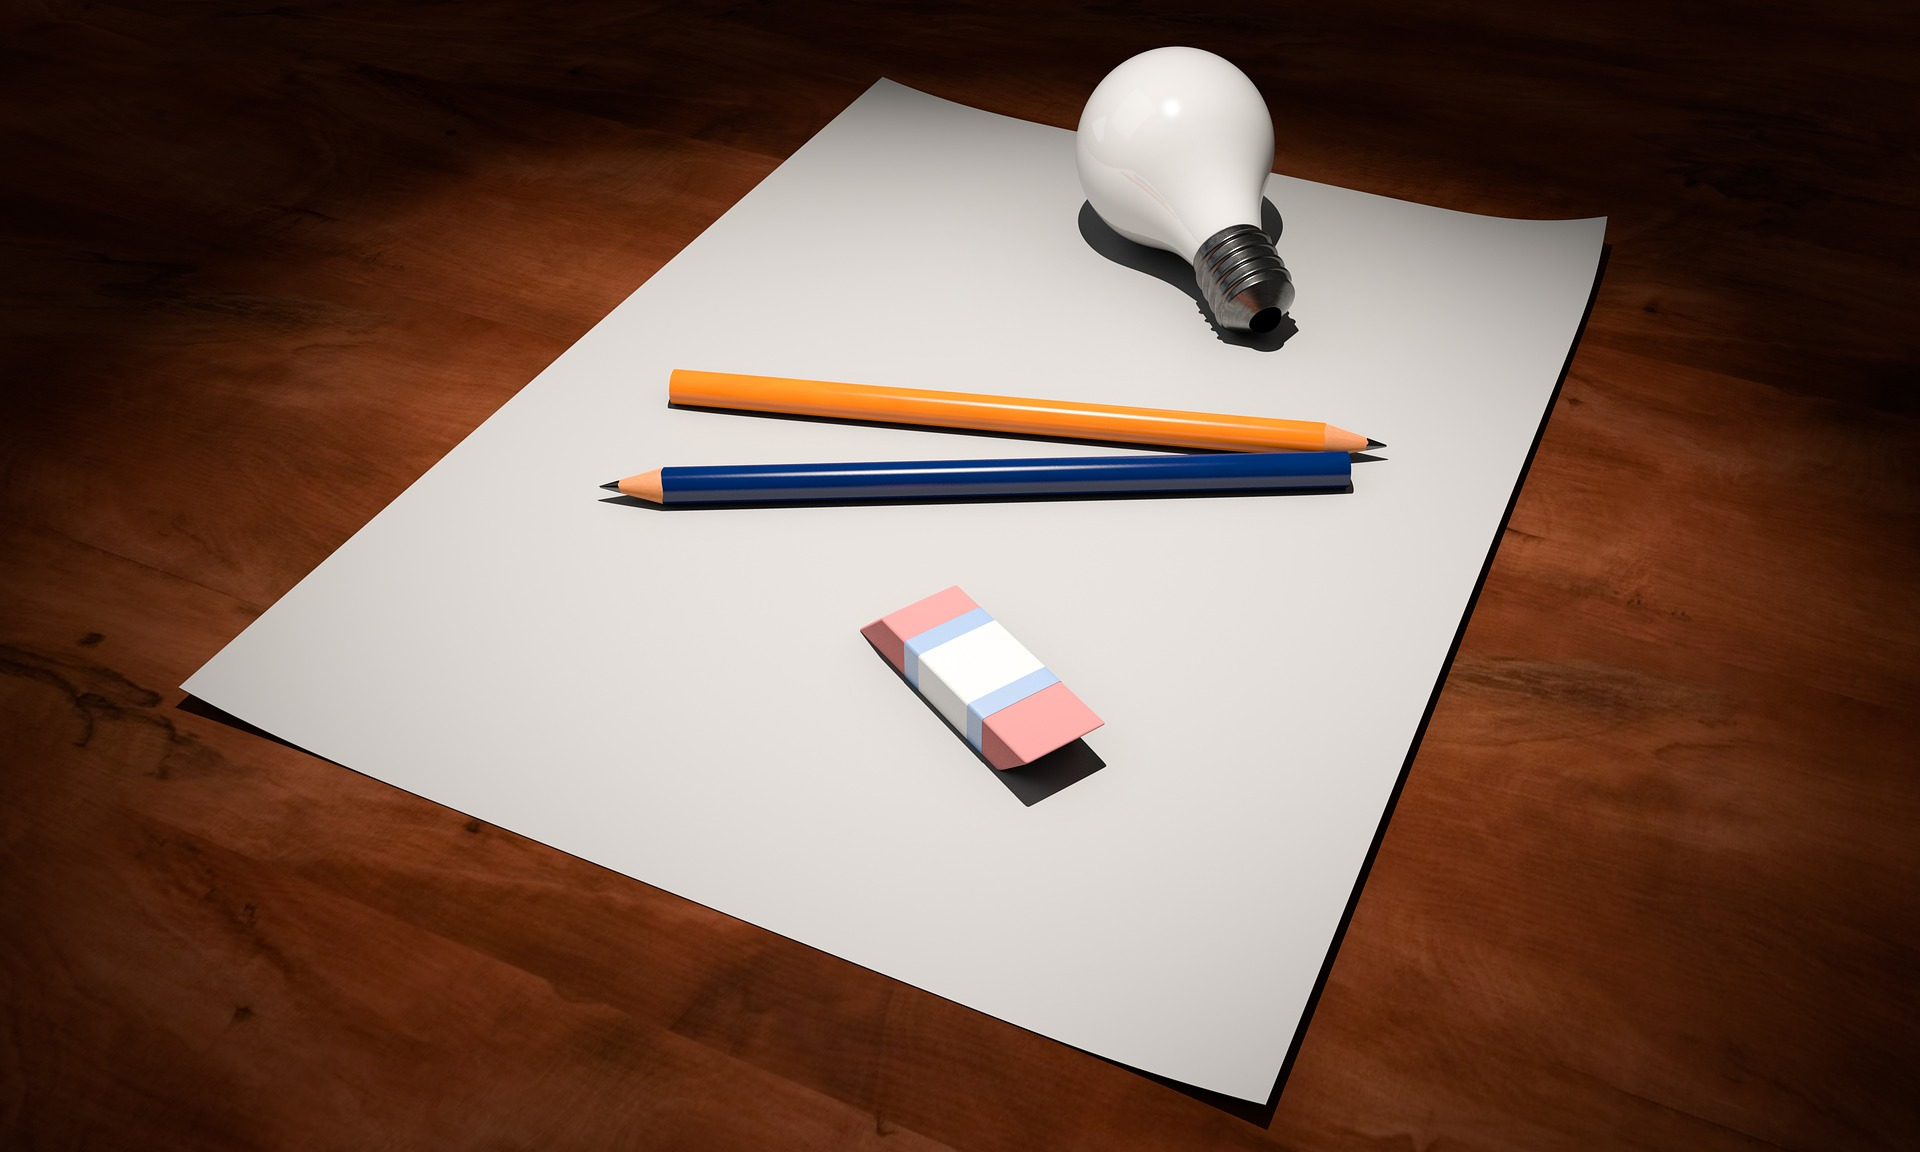 two pencils, an eraser and a light bulb on top of a blank piece of paper.